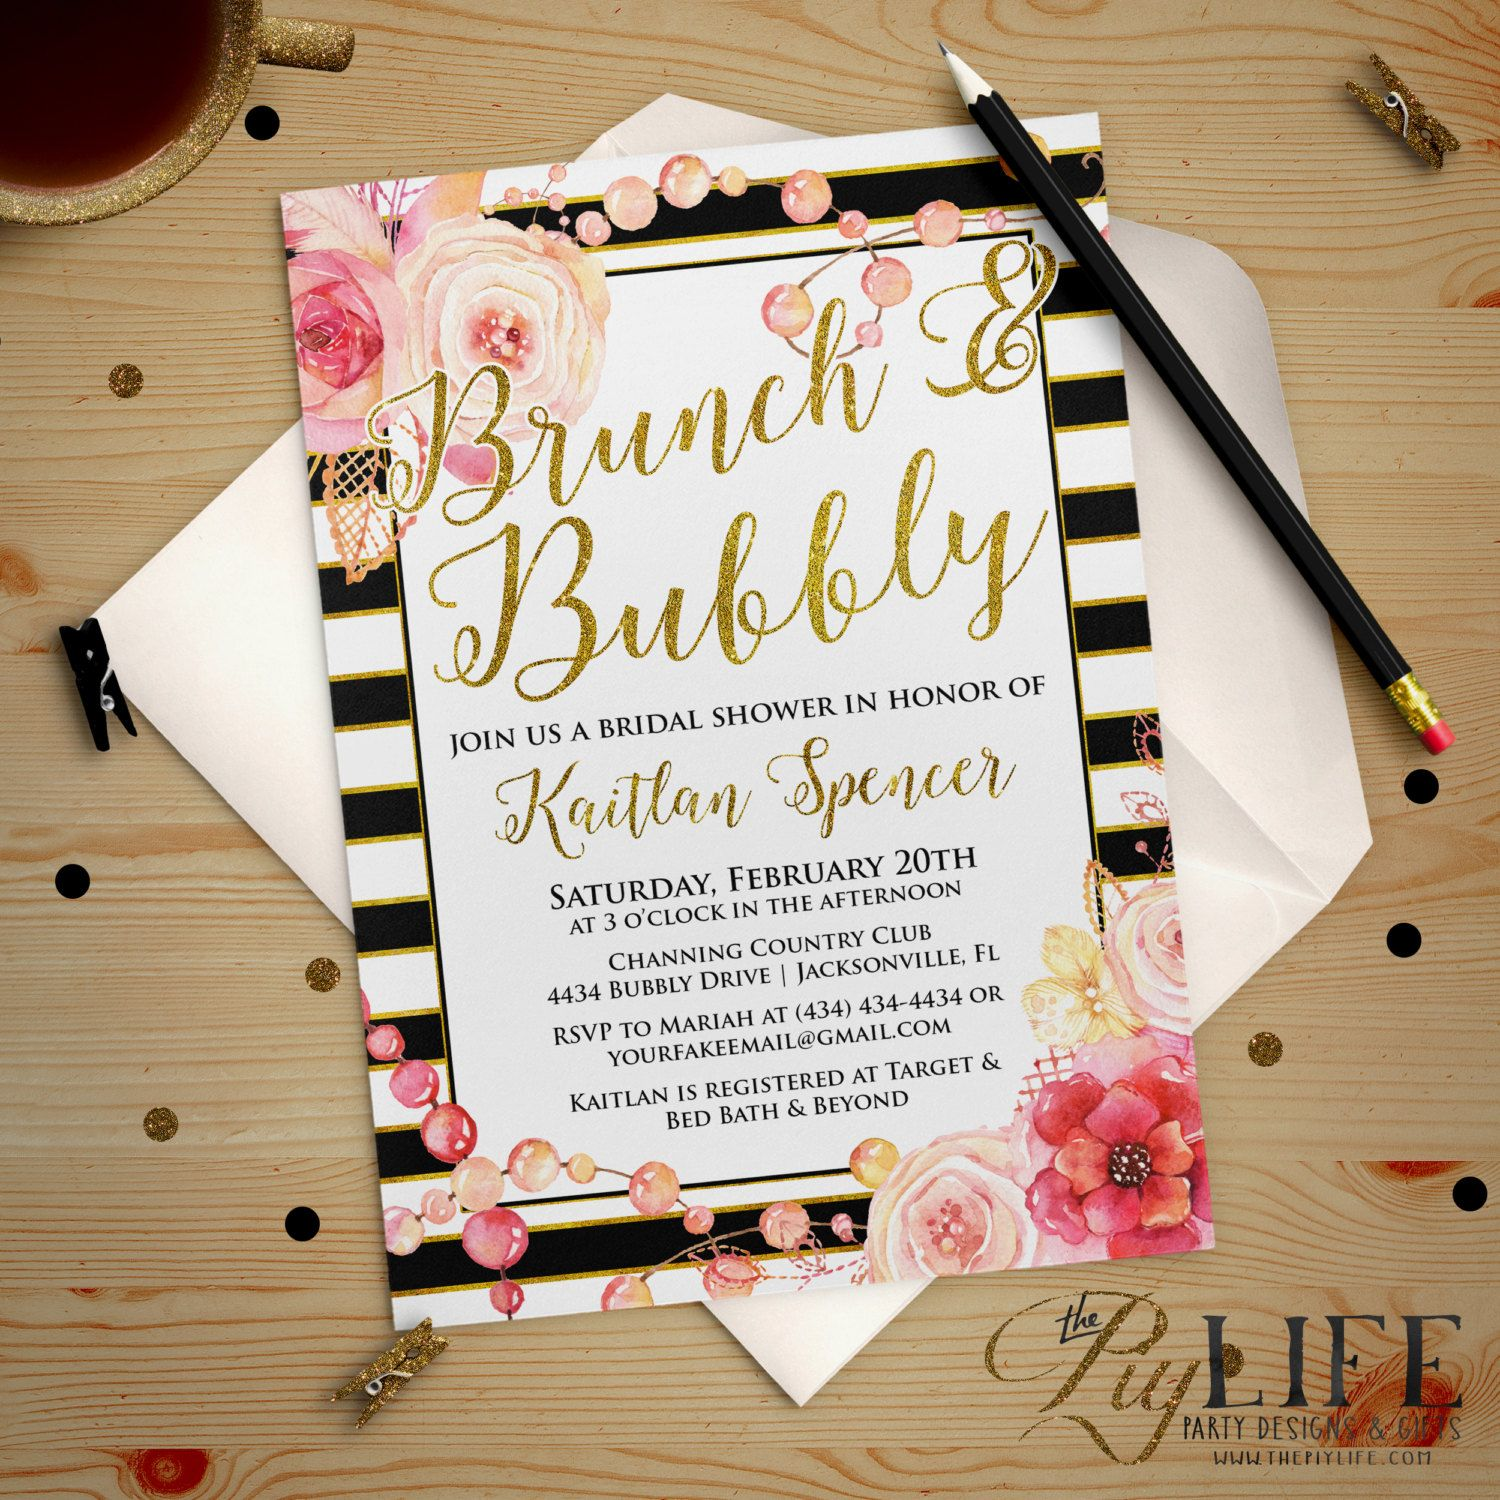 Good Floral And Gold Striped Bridal Shower Invitation Printable DIY No. I267